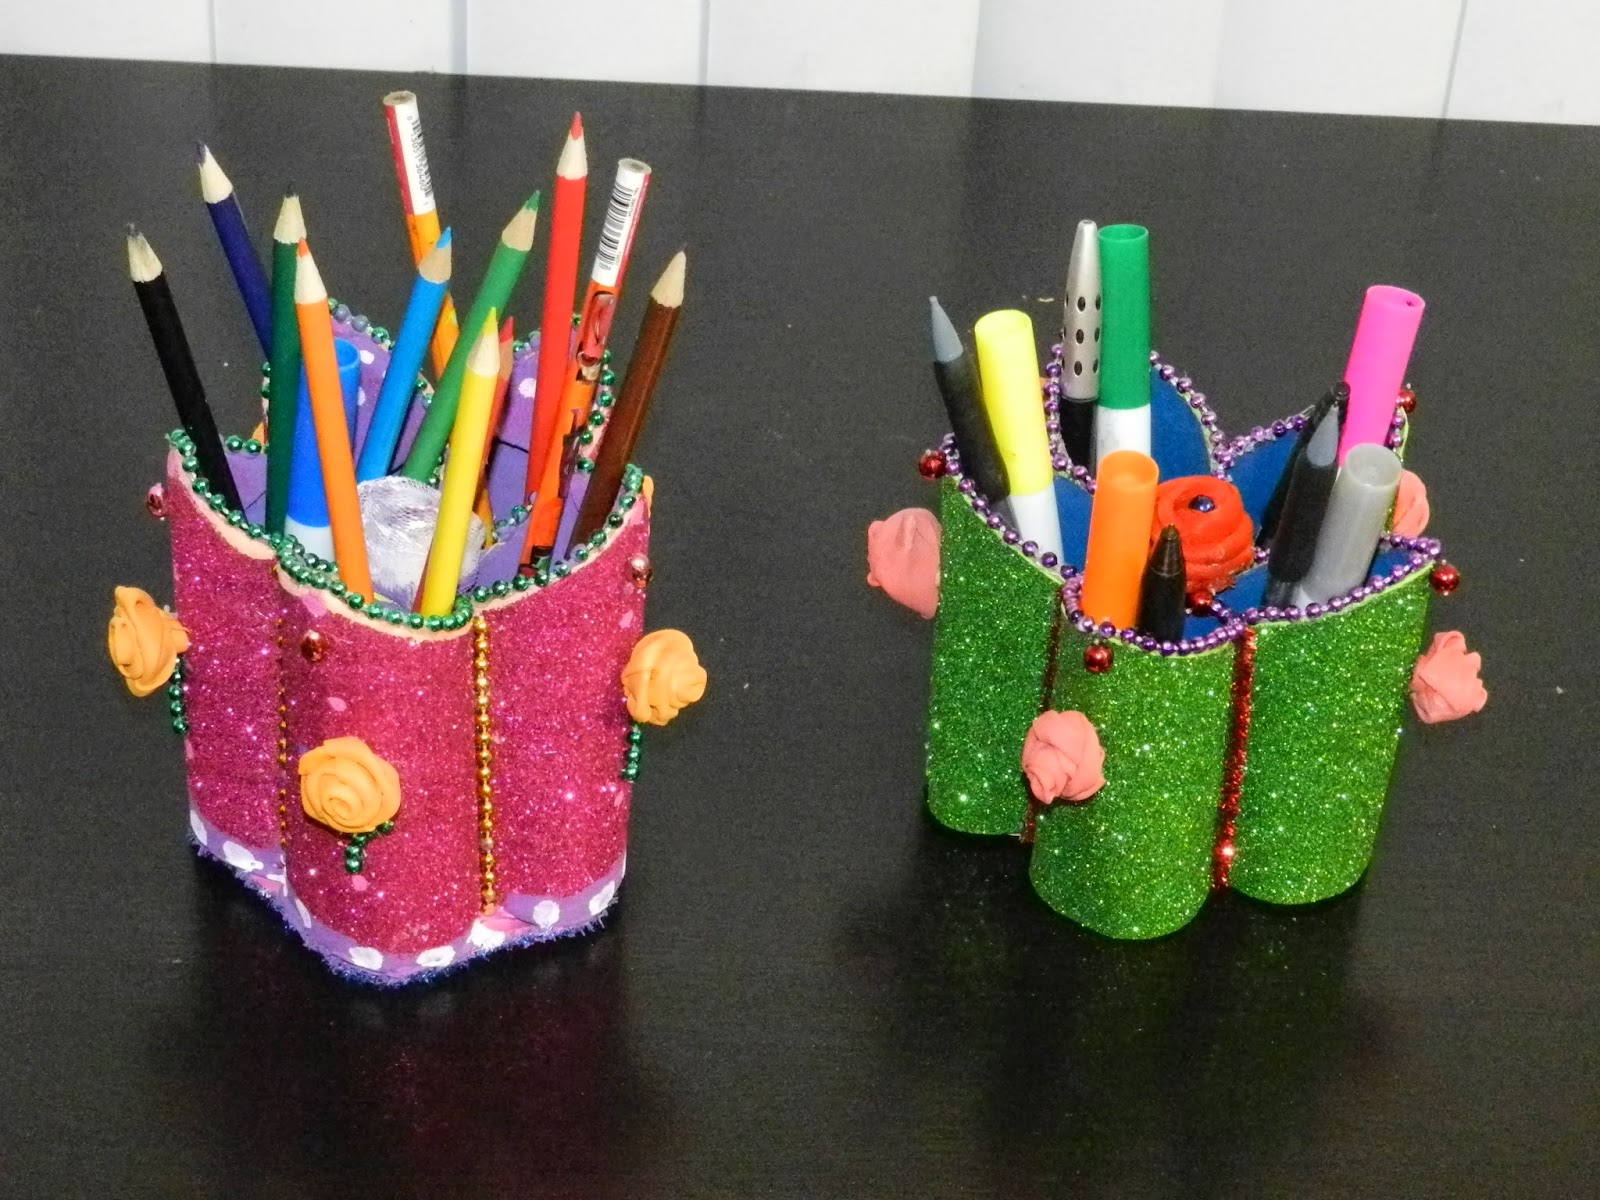 Creative Diy Crafts Flower Shaped Pen Stand Holder With Tissue